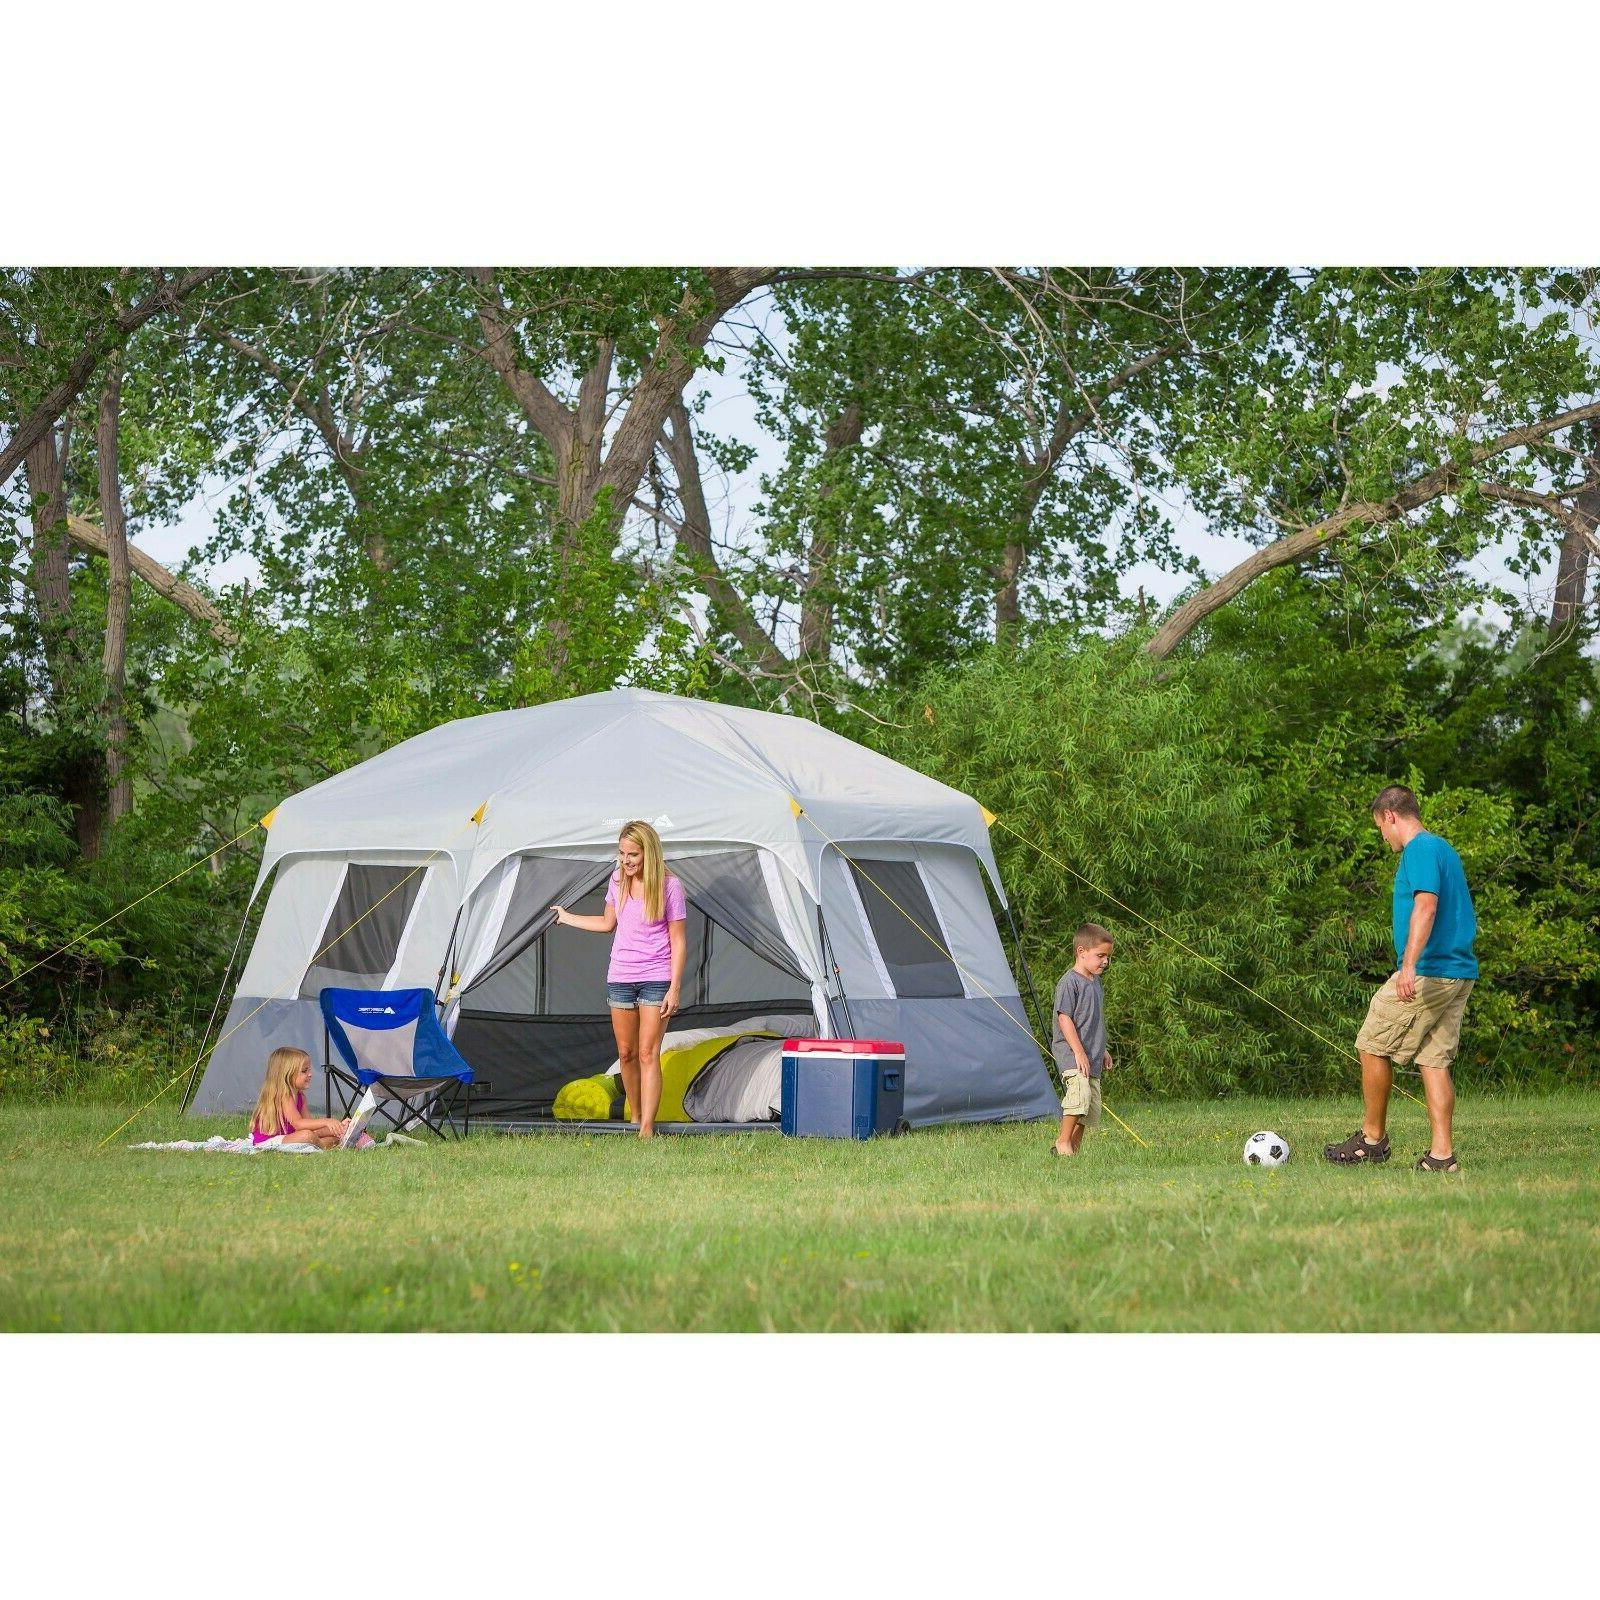 Instant Set Pop Up Hexagon 8 Person Outdoor Camping Shelter Tents